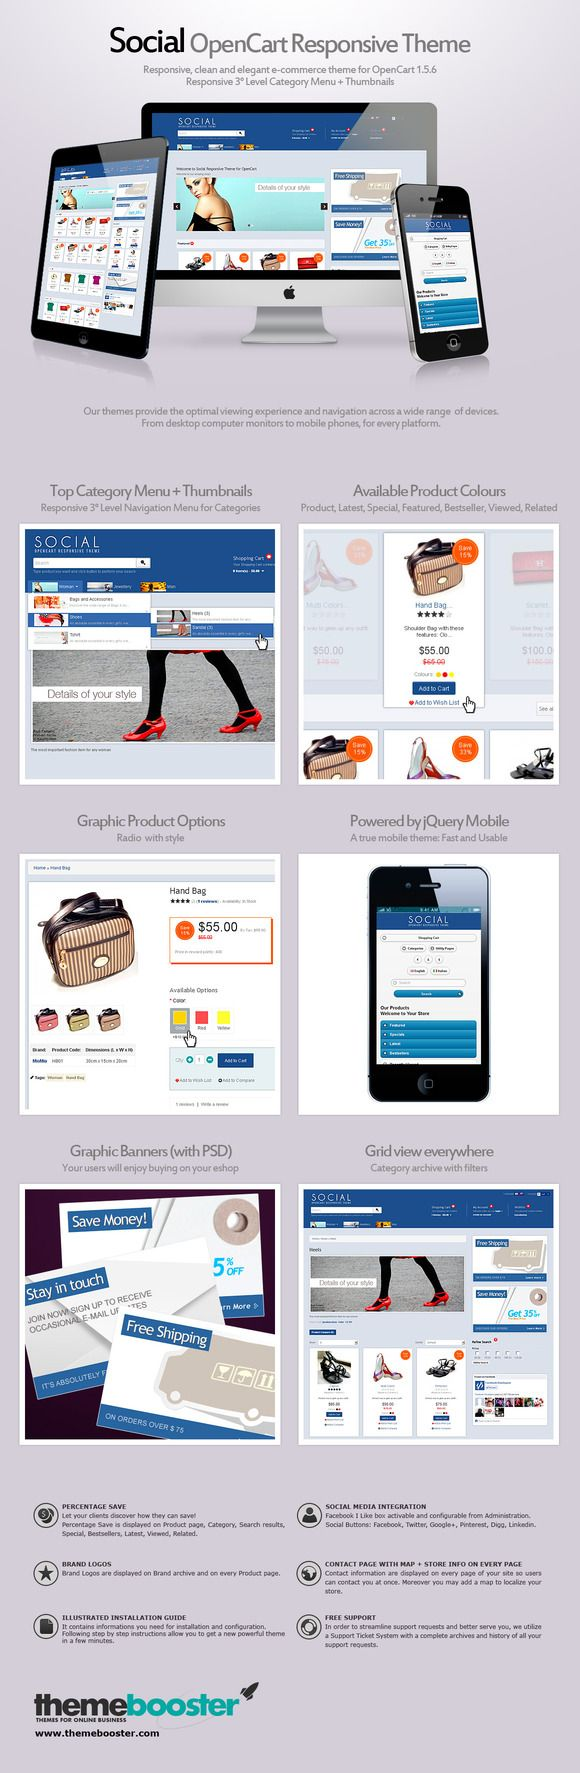 Social Responsive Theme for OpenCart by ThemeBooster.com on Creative Market